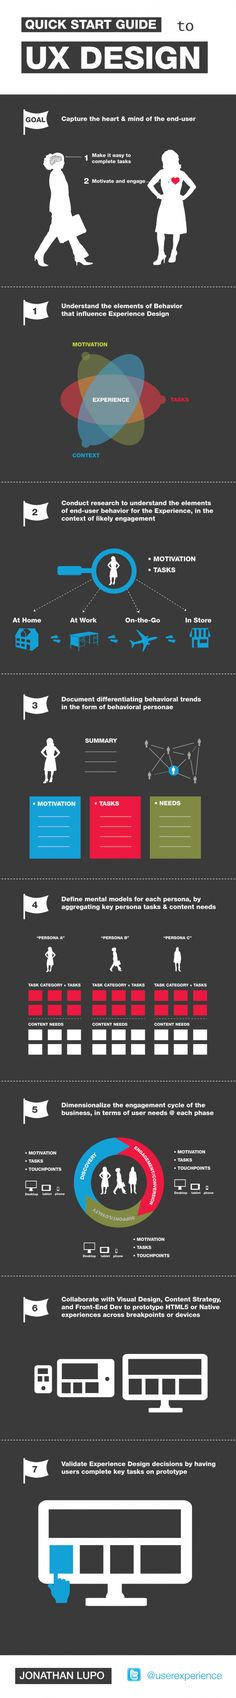 A Quick Start Guide to UX Design - #Infographic